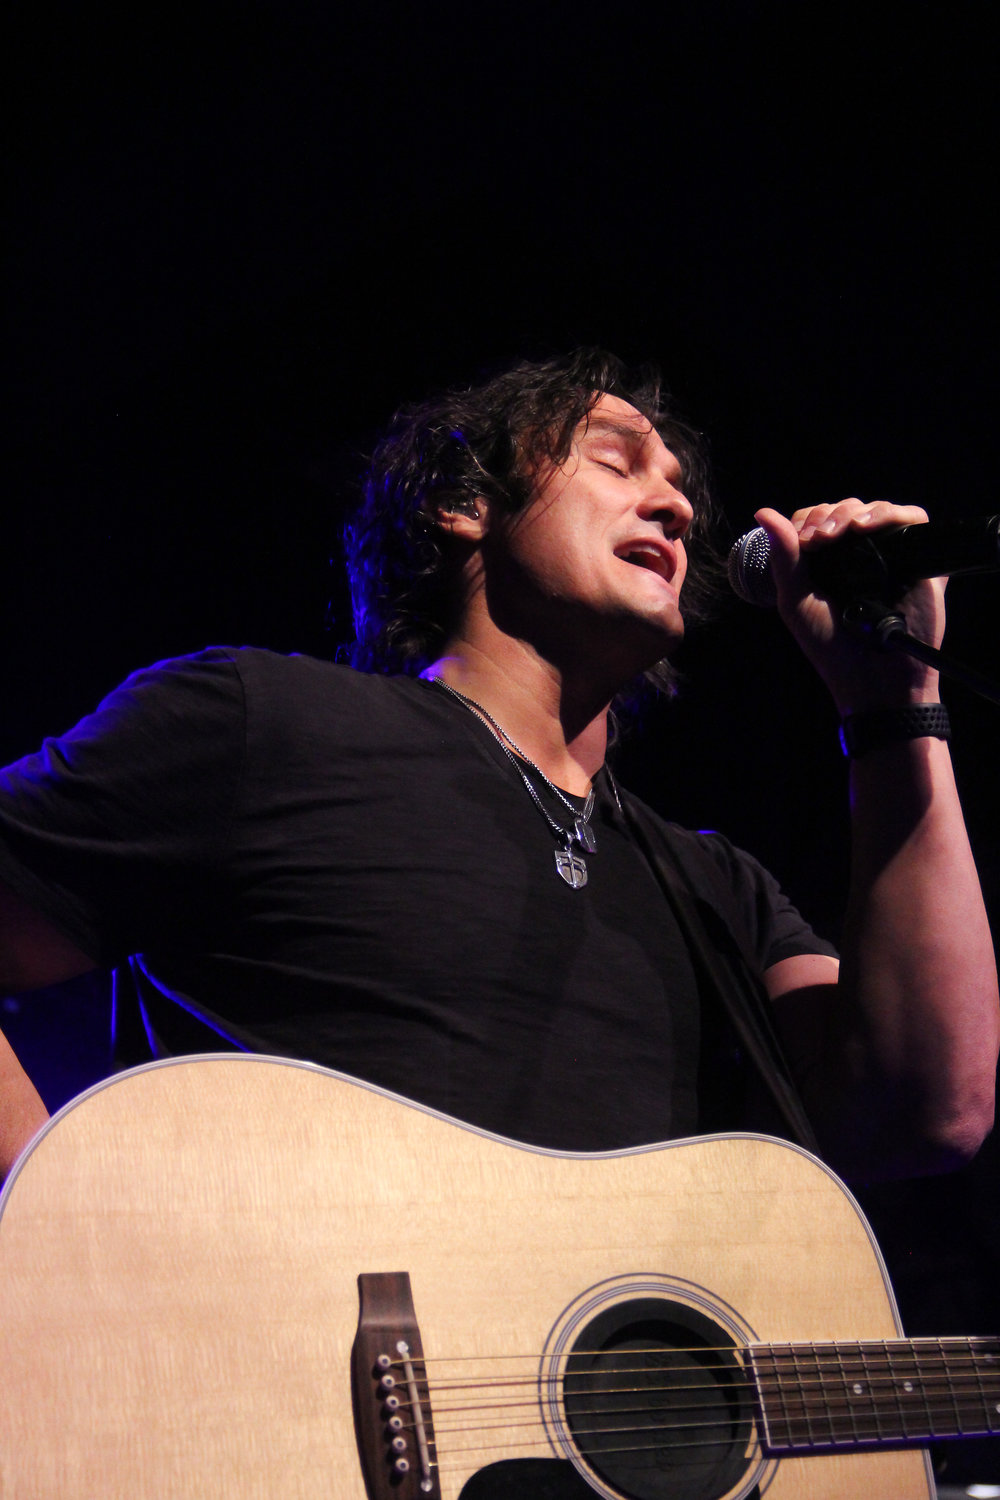 Joe Nichols performing some of his hits last night for FFA students that came from all over North Carolina.